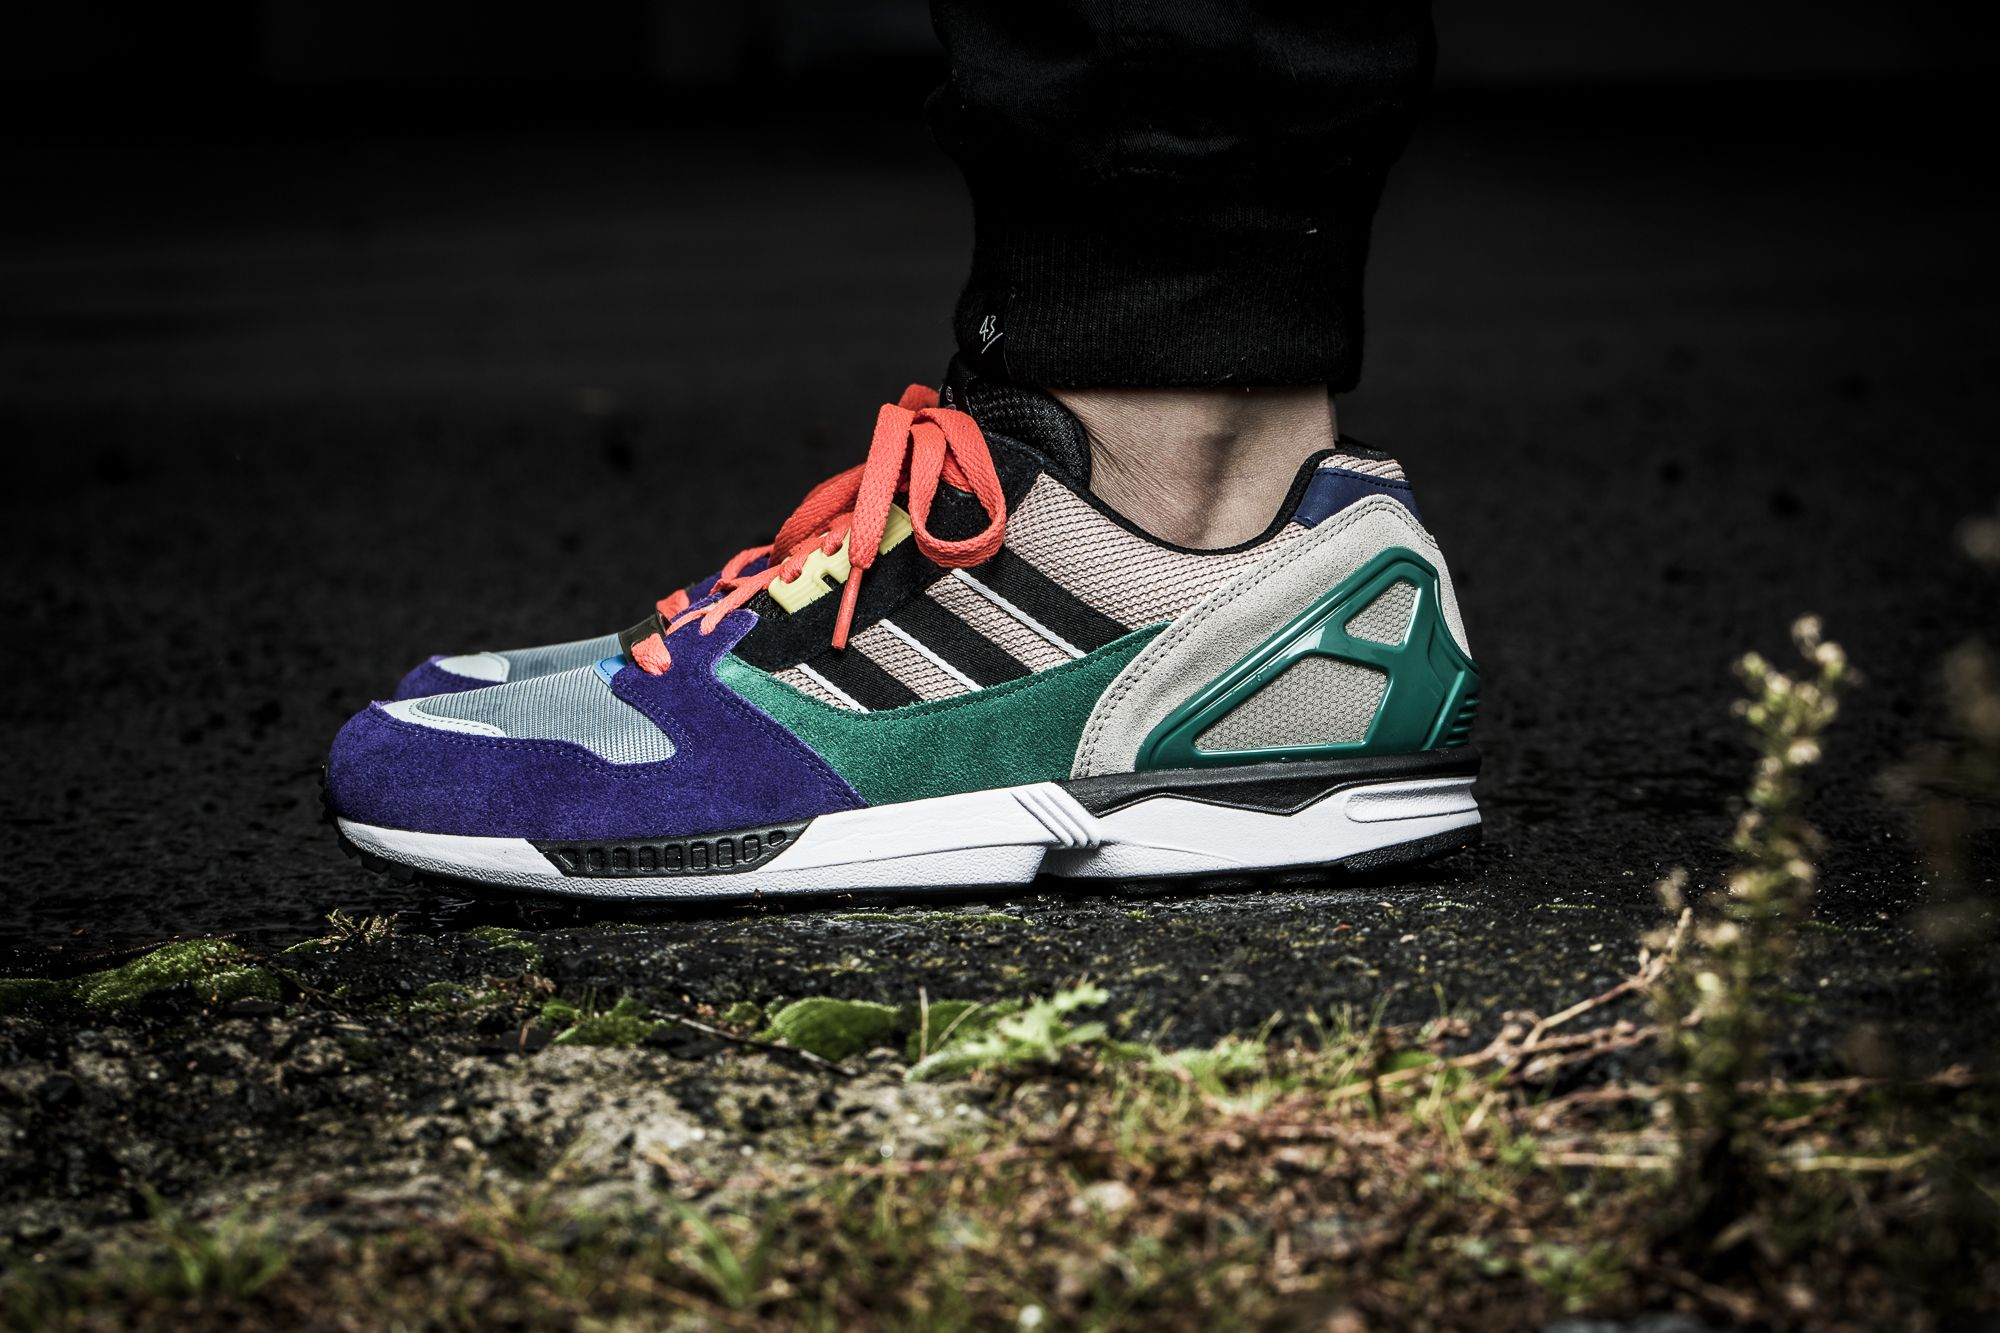 The adidas originals ZX 8000 is available at our shop now